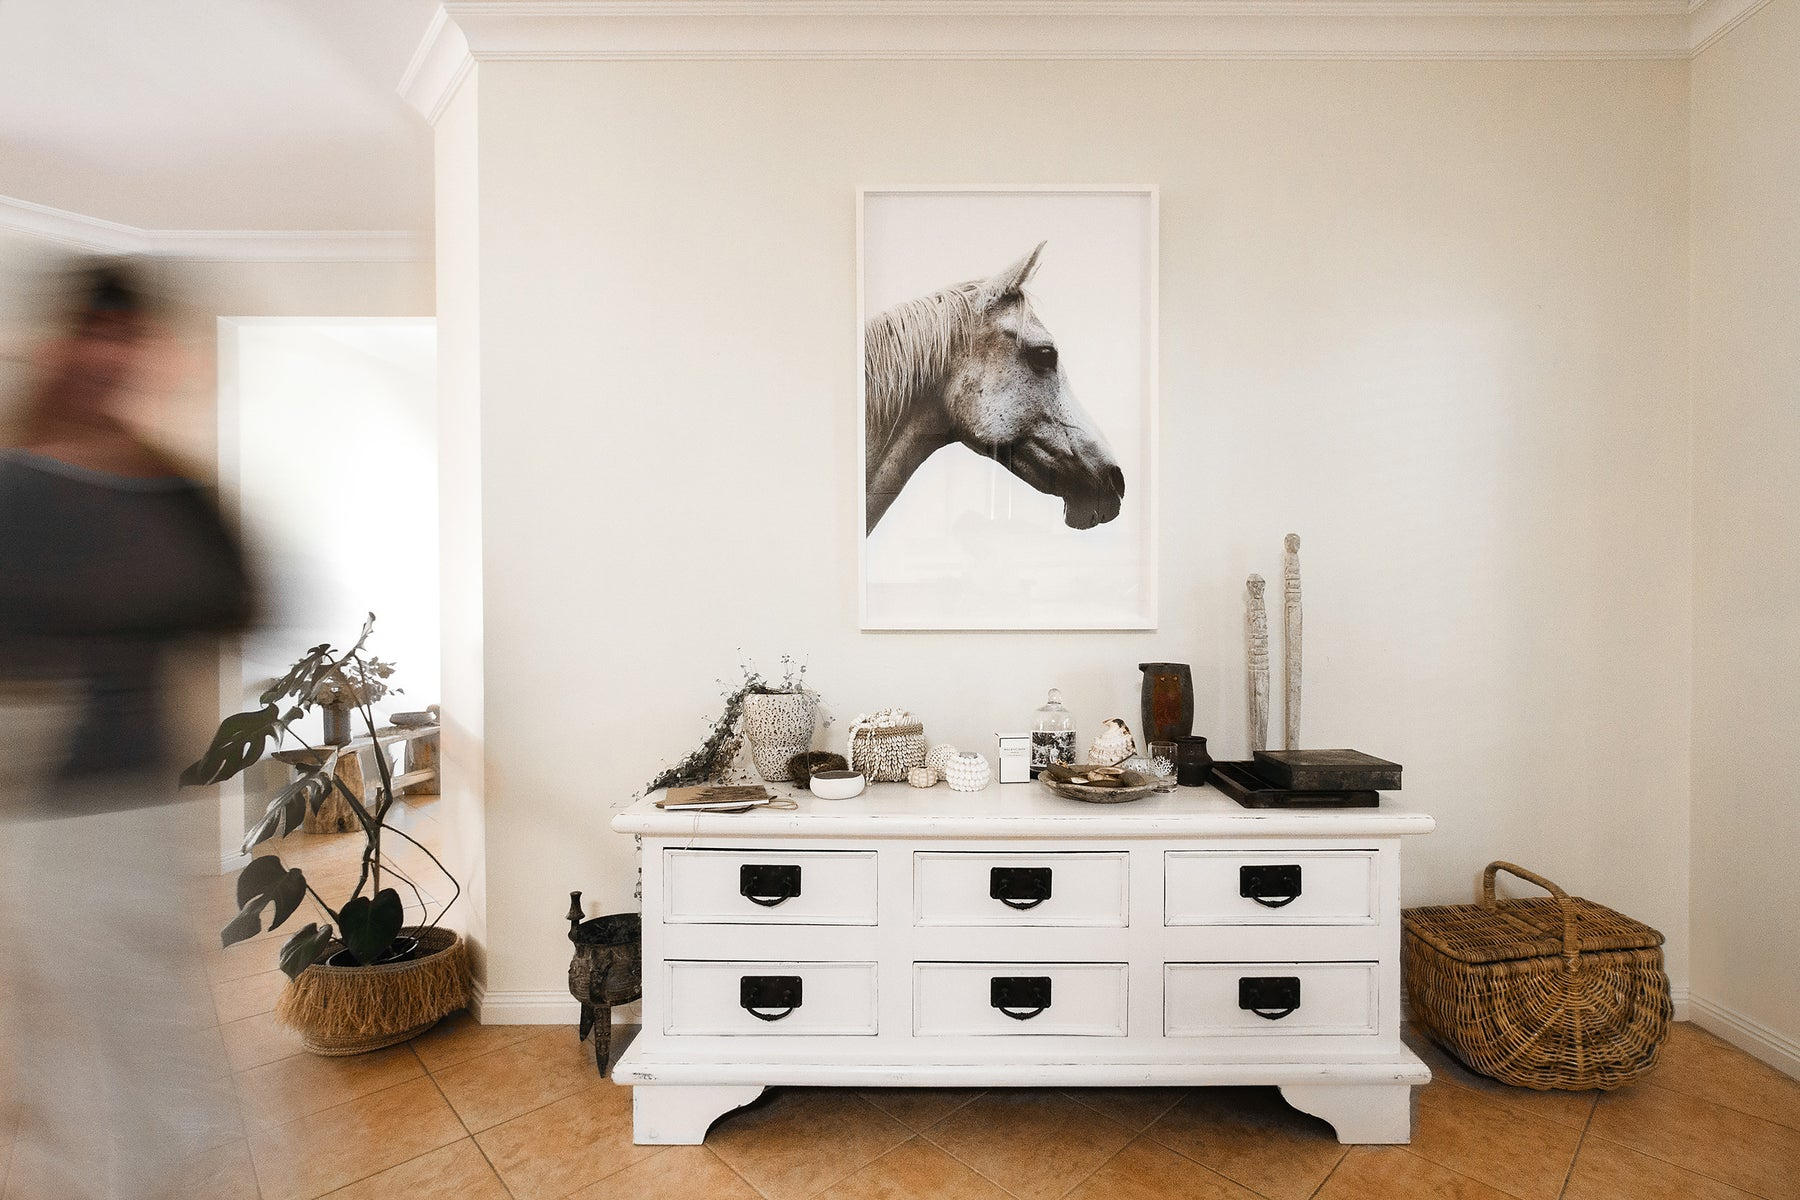 Appaloosa fine art print by Lisa Perhat styled and framed on wall. Bohemian interior design. Fine art prints.